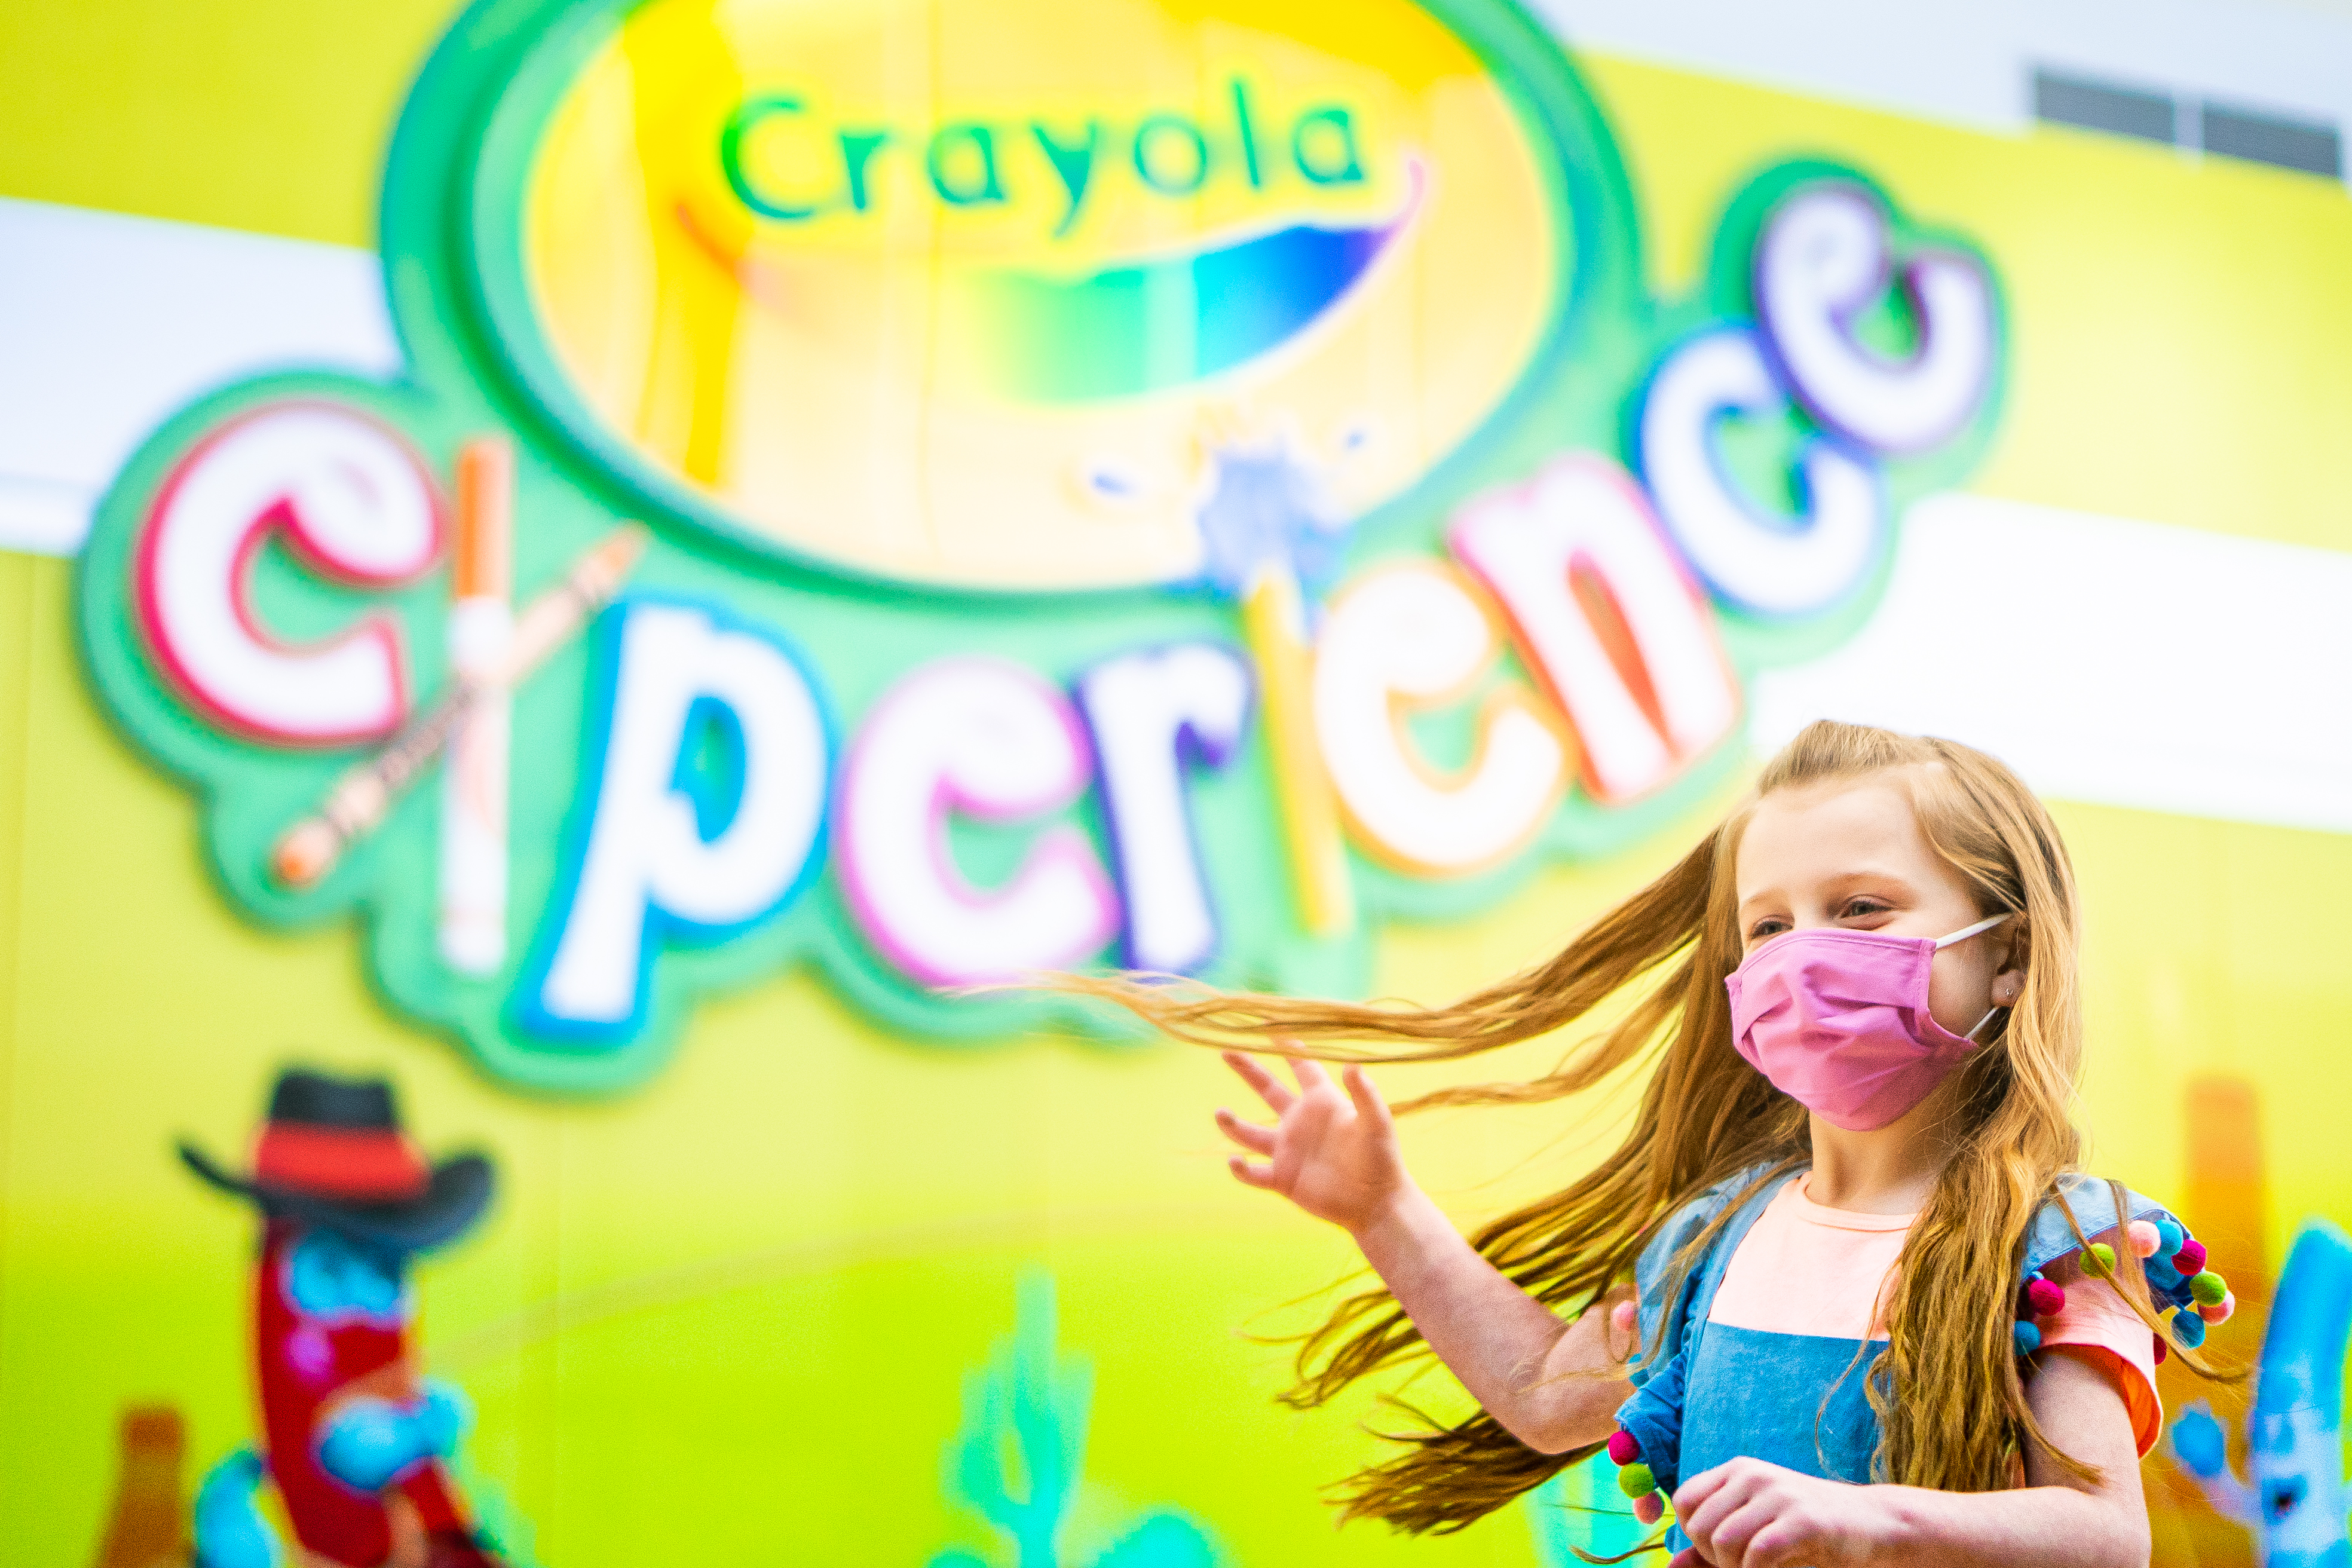 Young girl in front of Crayola Experience store